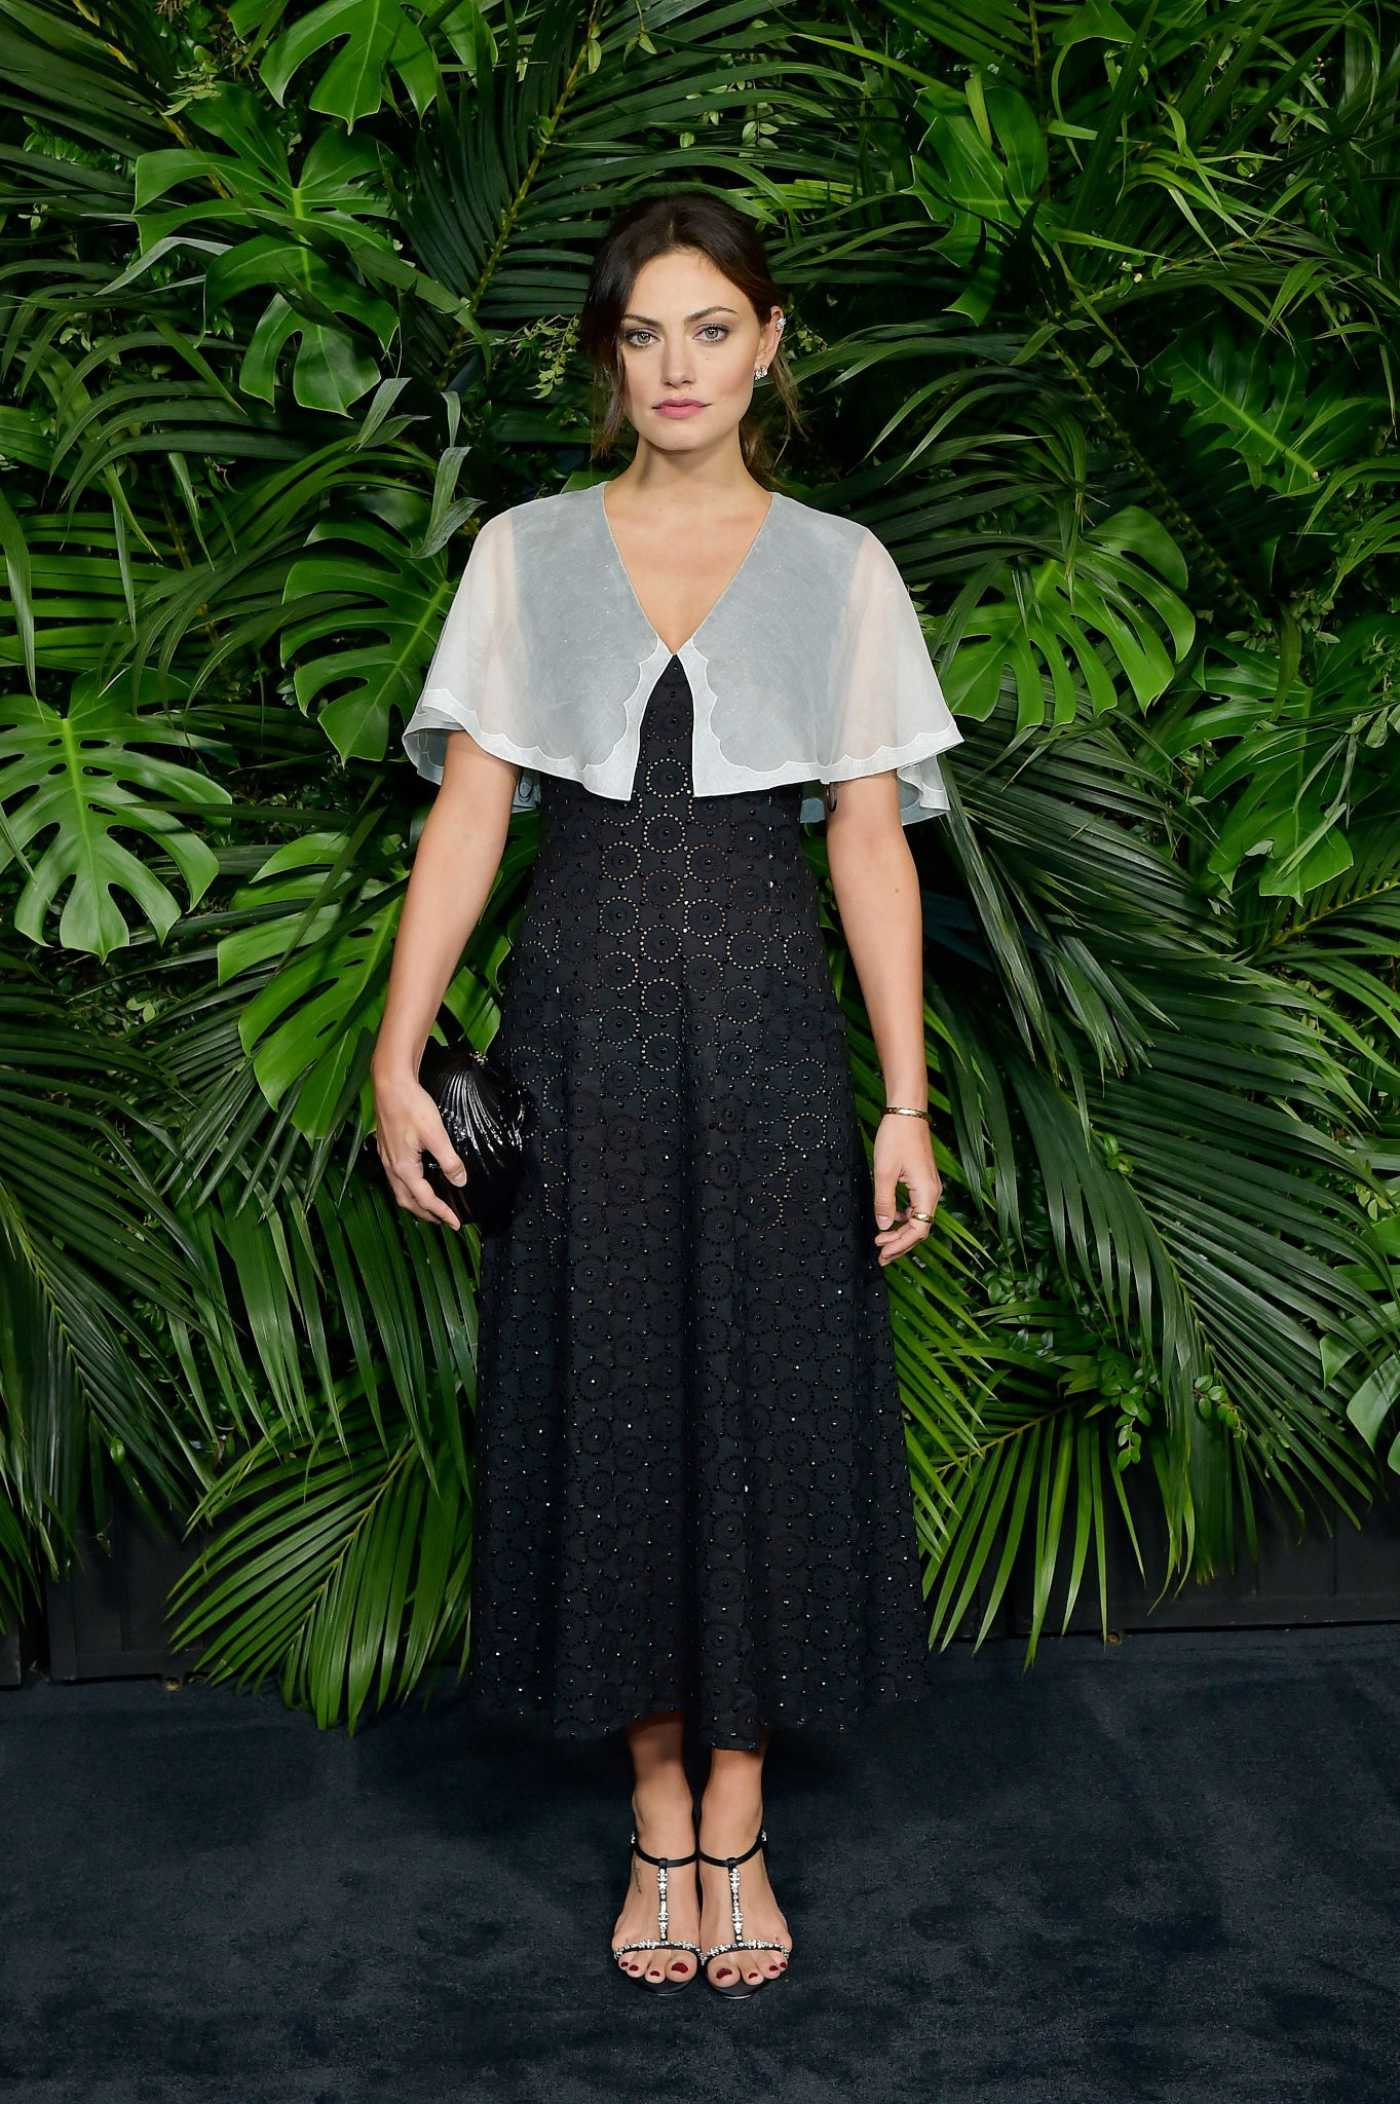 Phoebe Tonkin Attends 2020 Charles Finch and Chanel Pre-Oscars Dinner in Beverly Hills 02/08/2020